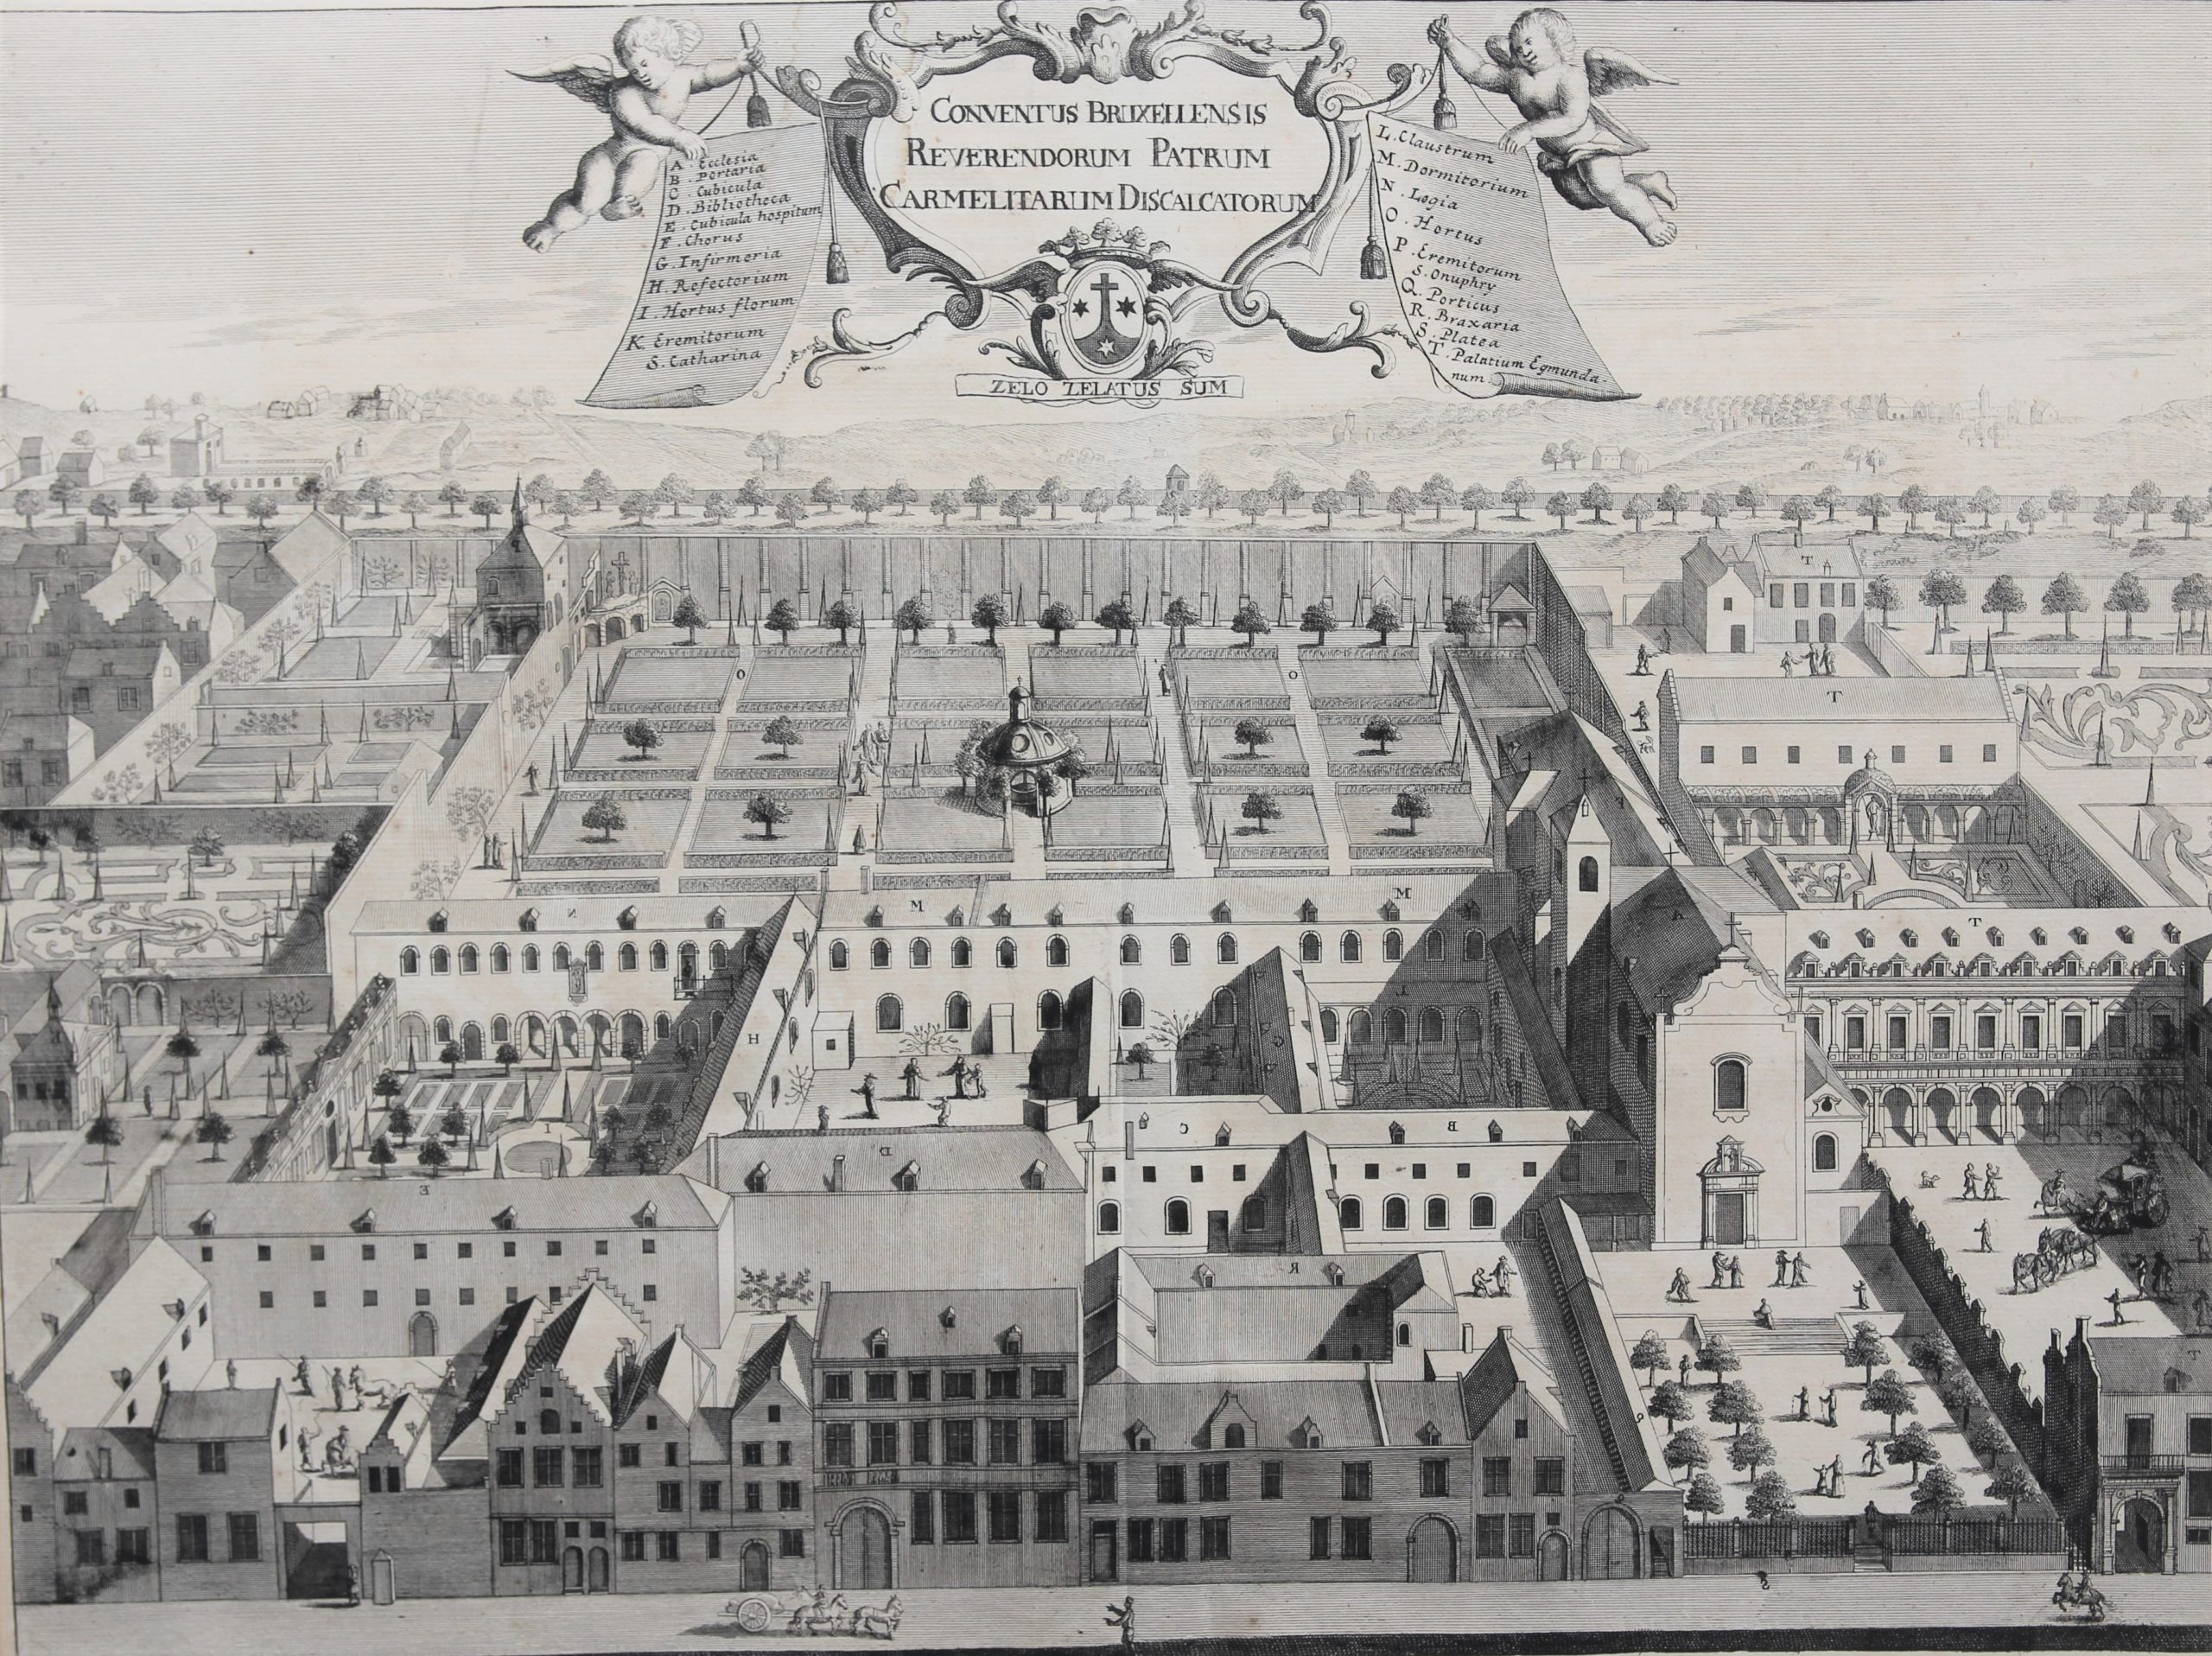 Old view of the convent of the Dicalced Carmelites in Brussels by Sanderus,/Blockhuyzen 1726